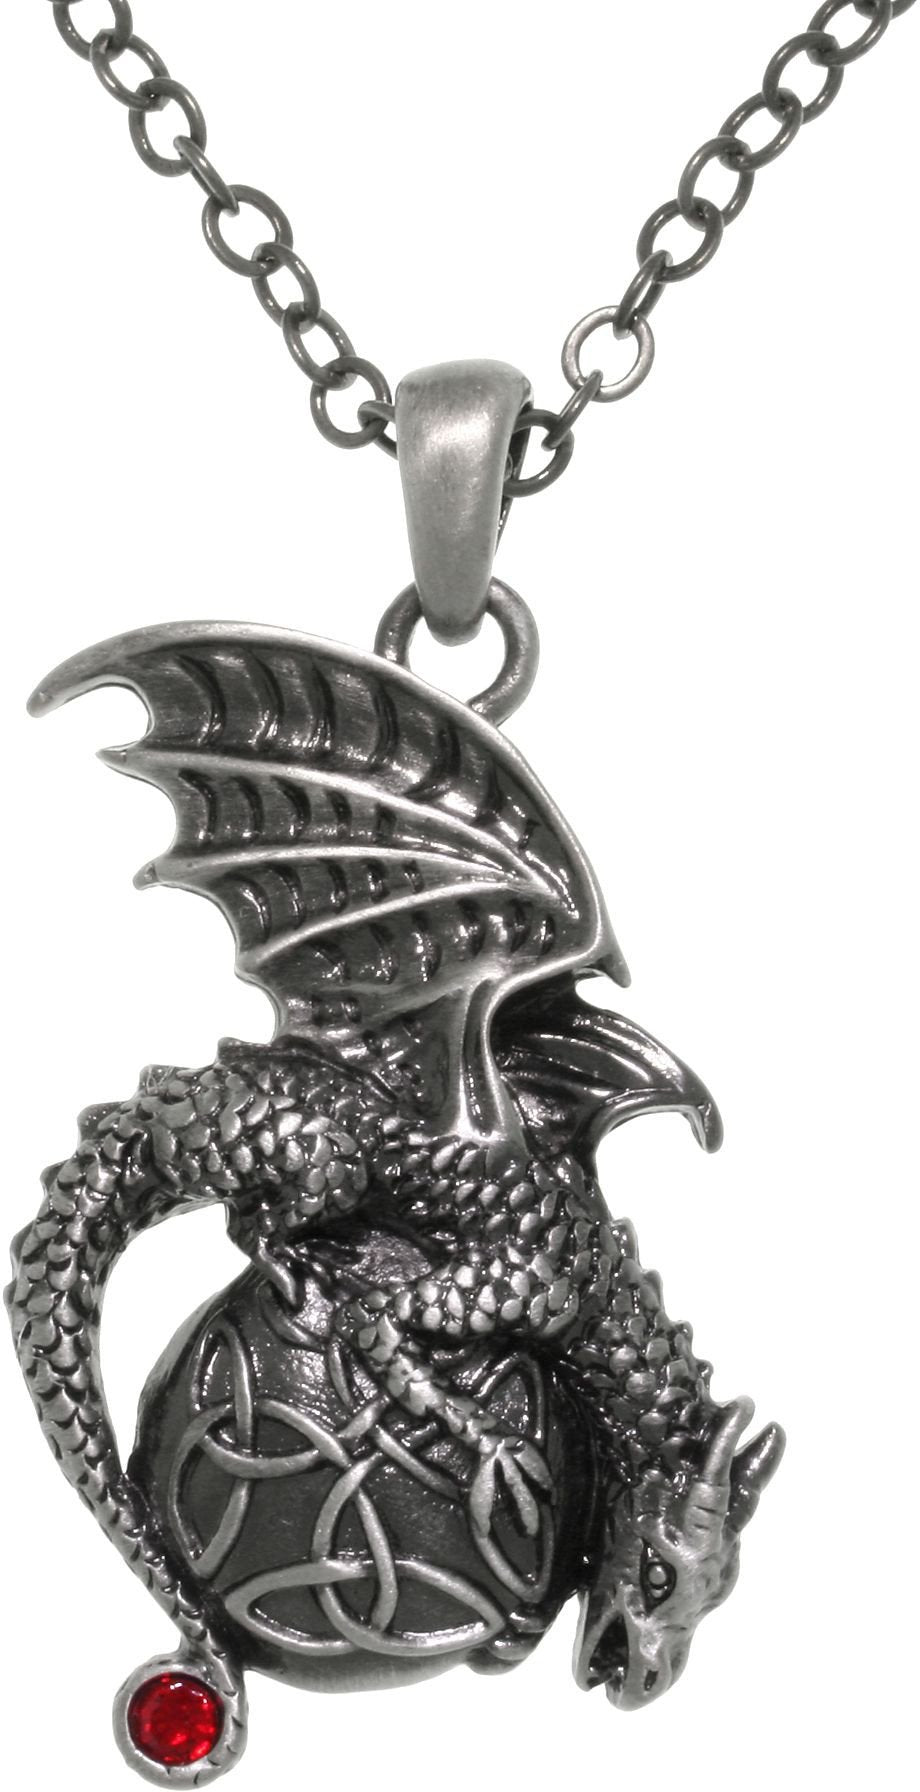 Jewelry Trends Pewter Dragon with Celtic Trinity Knot Orb Pendant on 24 Inch Chain Necklace